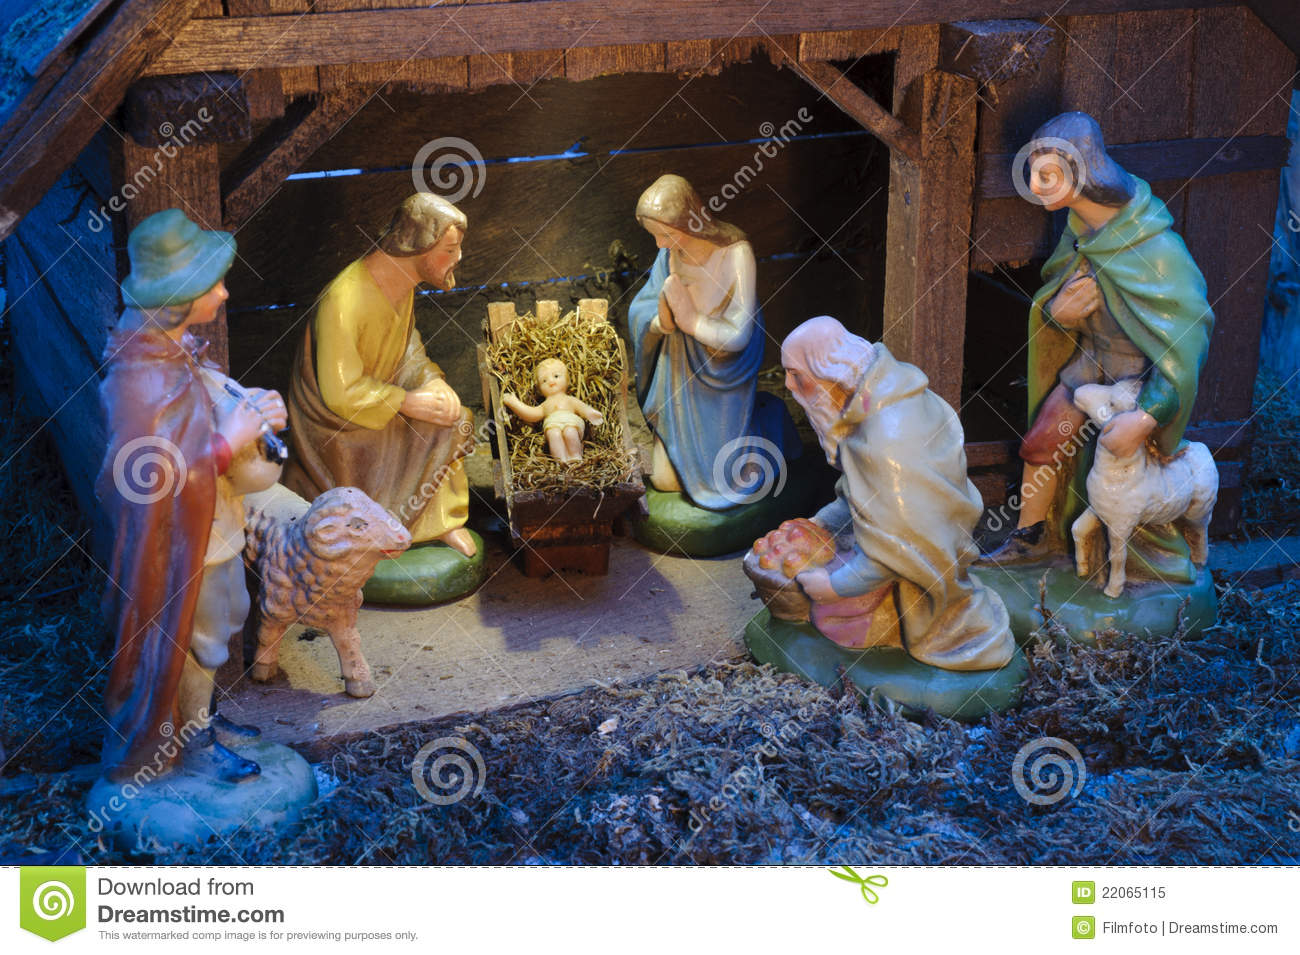 Christmas Crib Images Hd.Christmas Crib Stock Image Image Of Child Father Gift